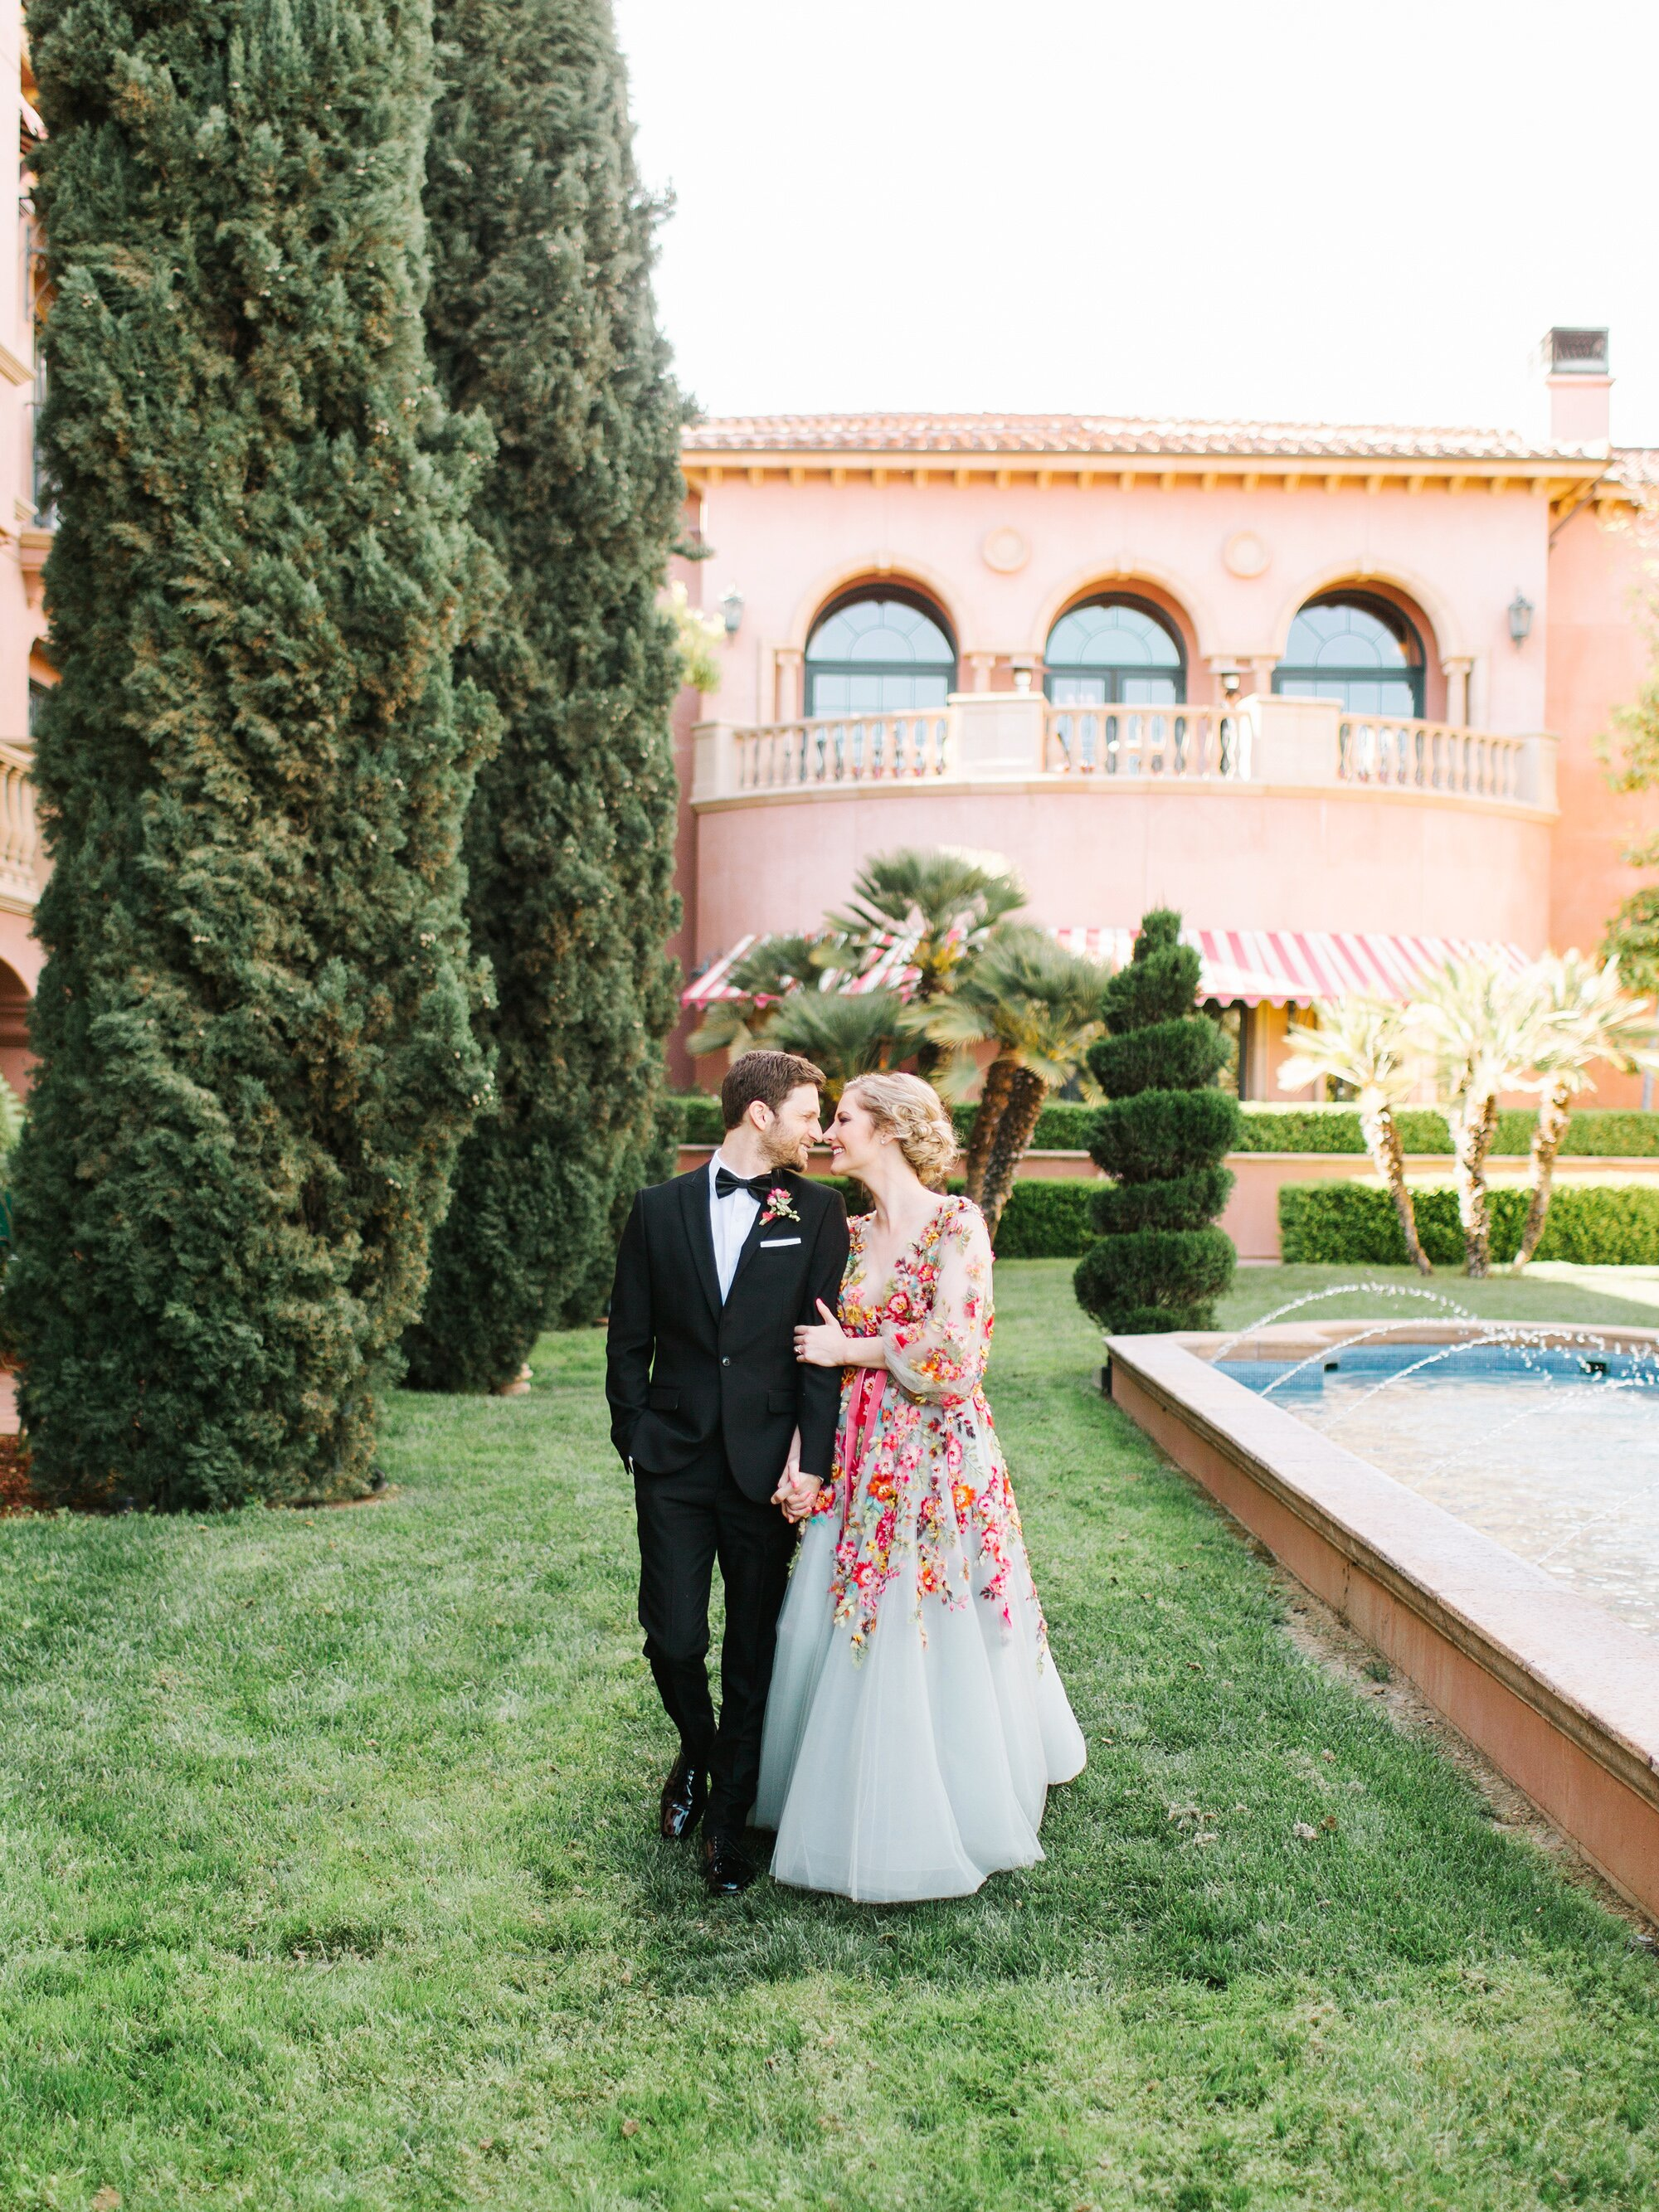 A Bright Colorful San Diego Wedding Inspired By Smoothies